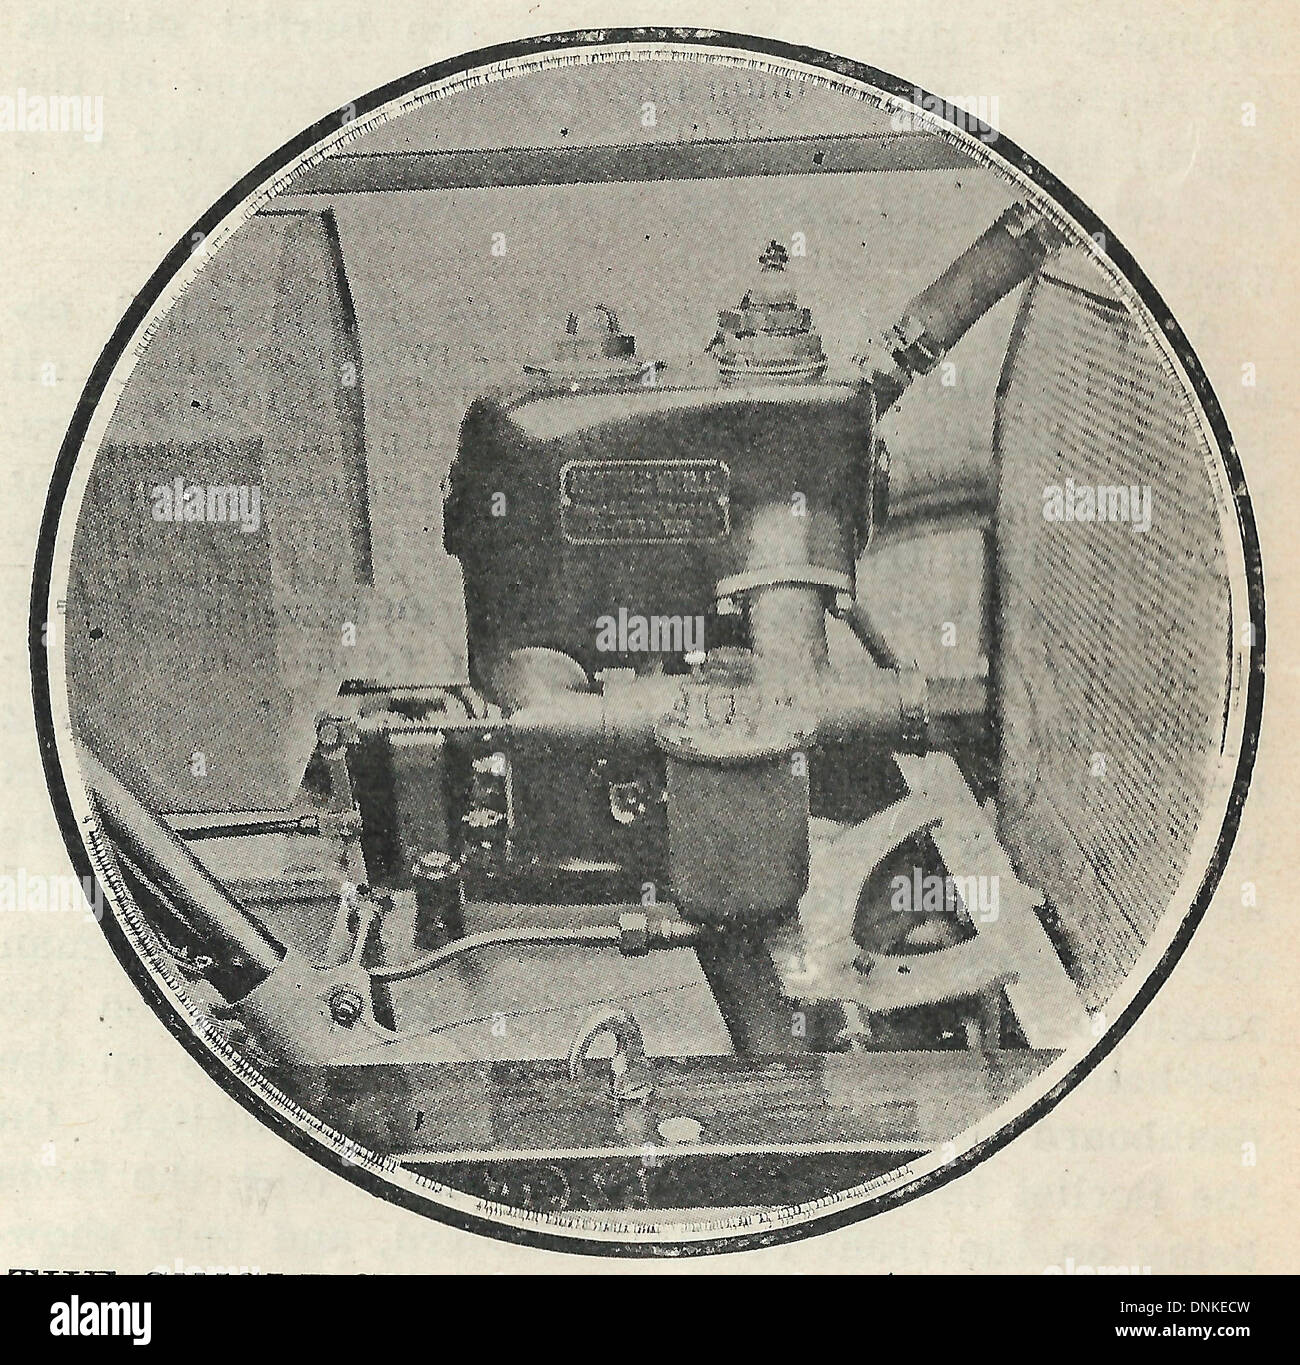 The single cylinder Motobloc Voiturette Engine - The engine is notable since it crankcase and the gear box of the car form a unit 1909 - Stock Image